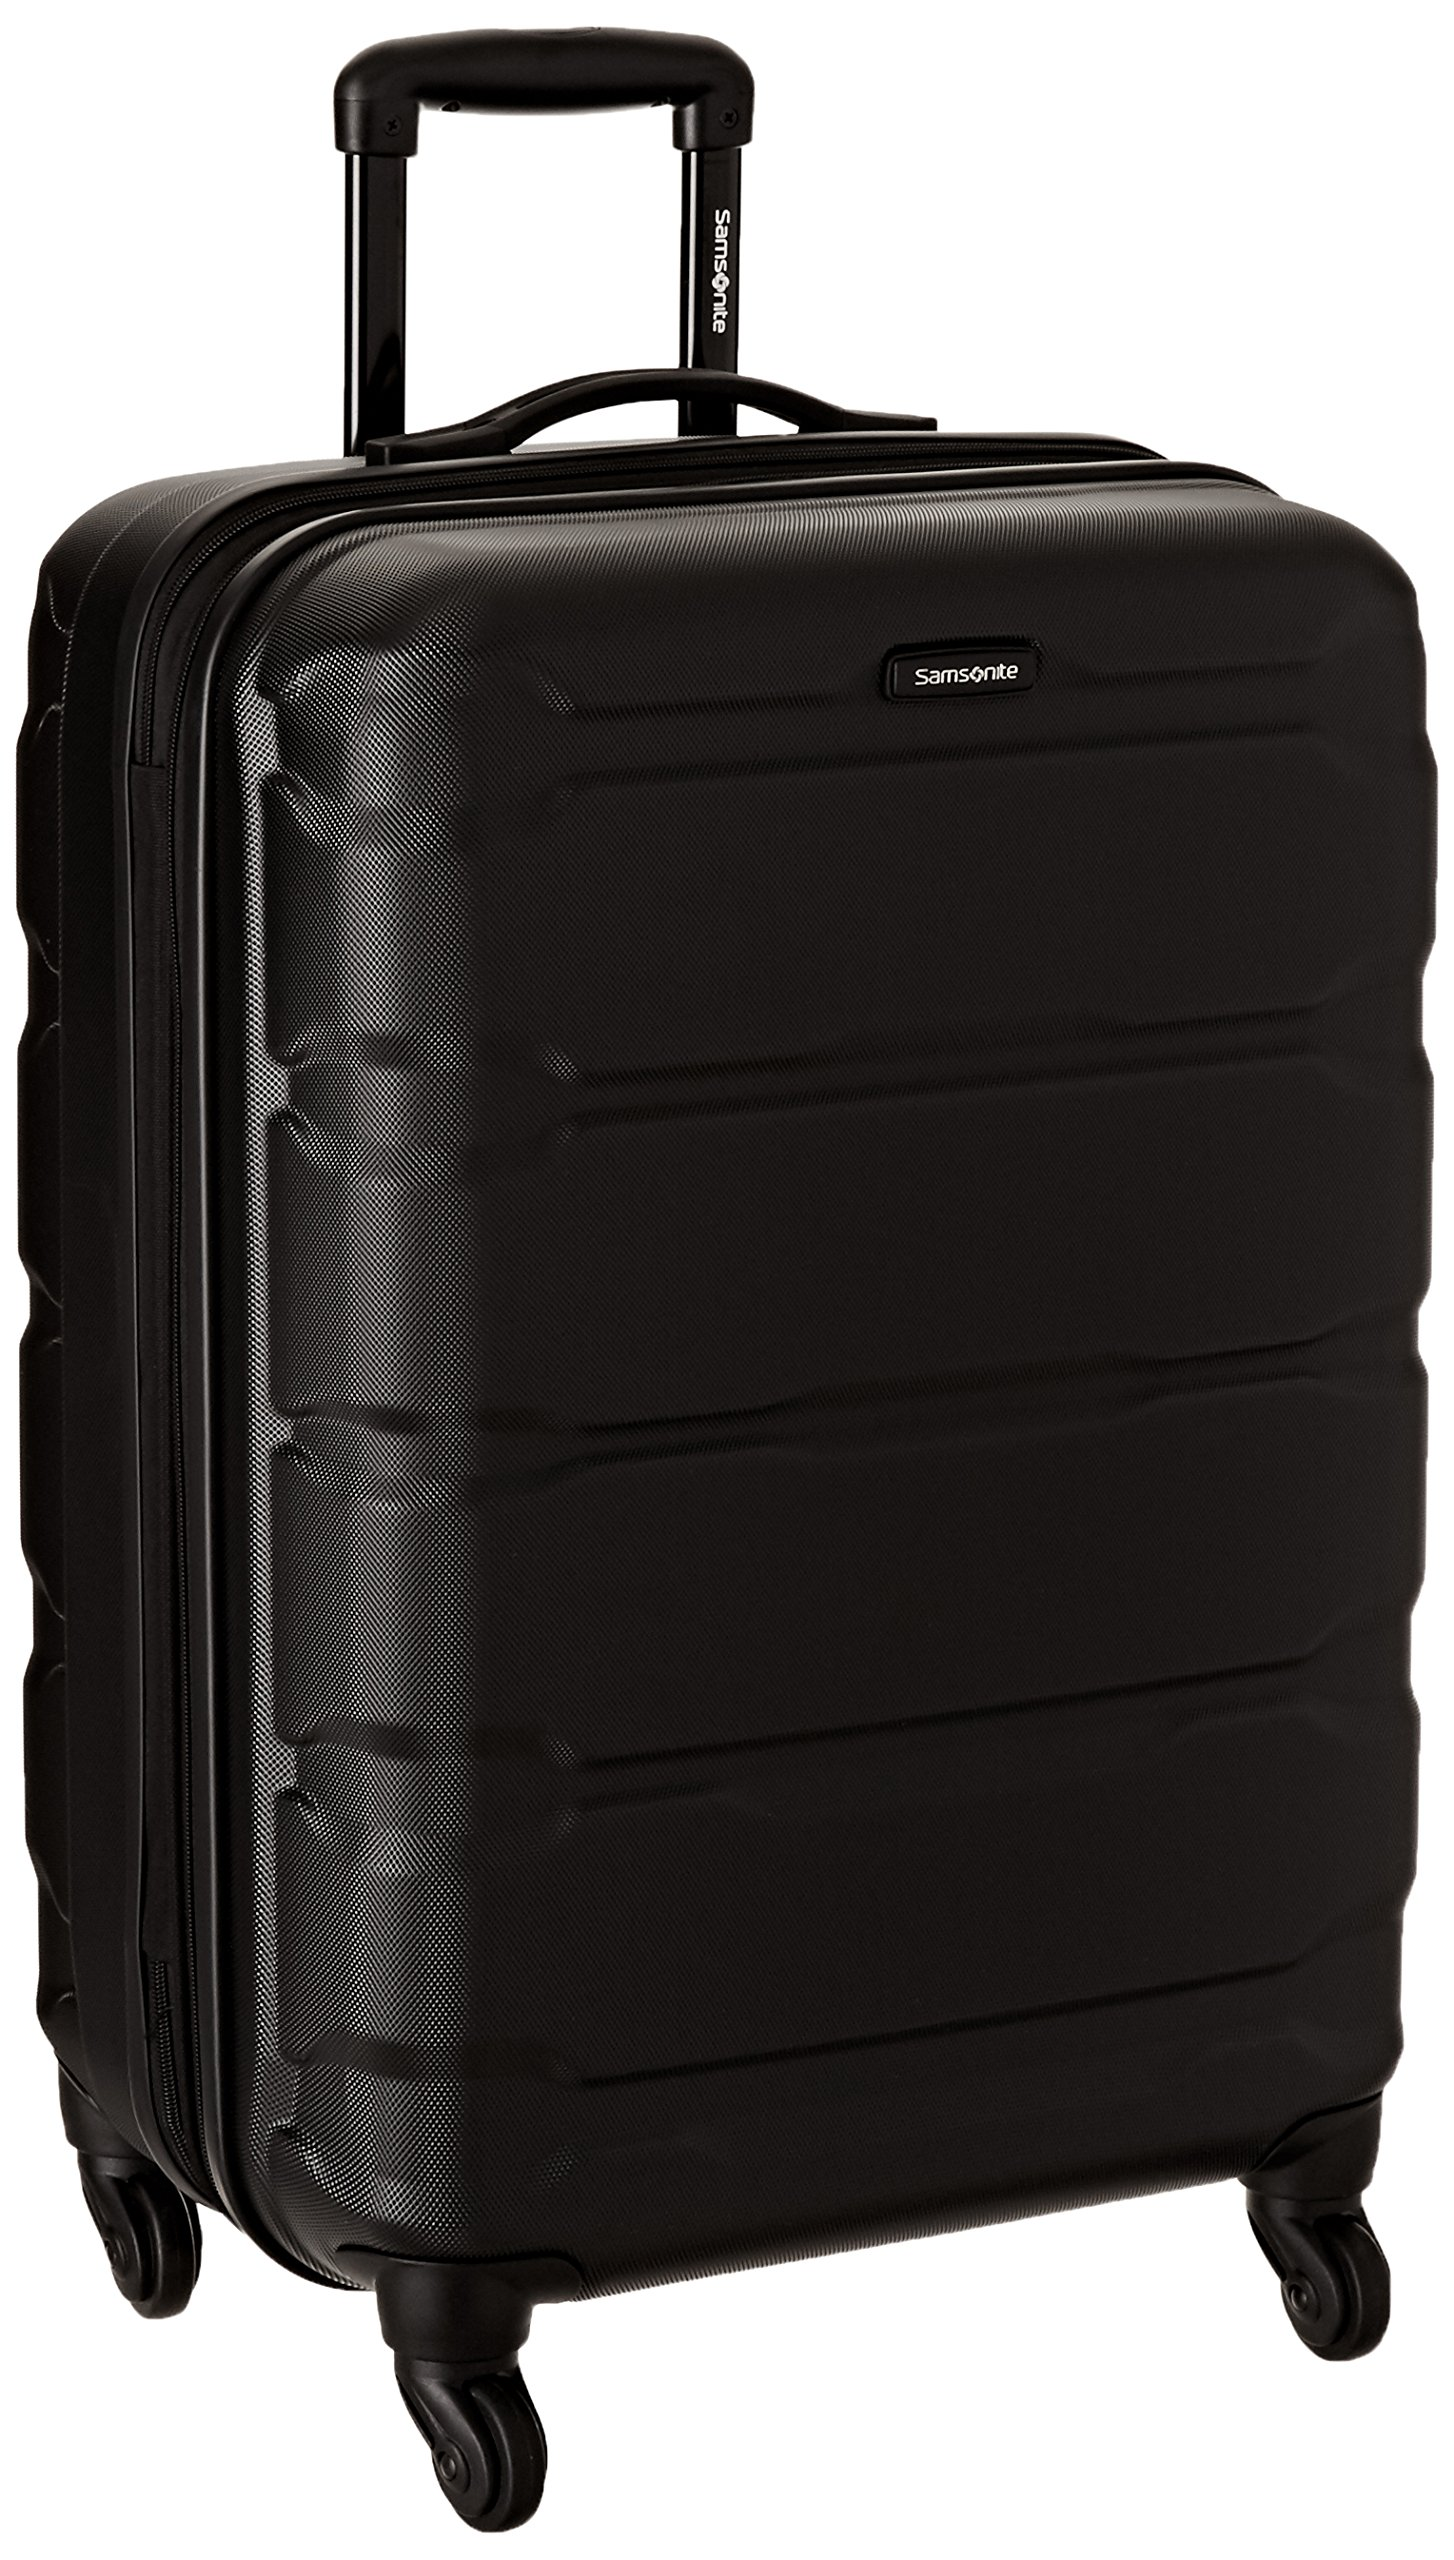 Samsonite Omni PC Hardside Spinner 24, Black